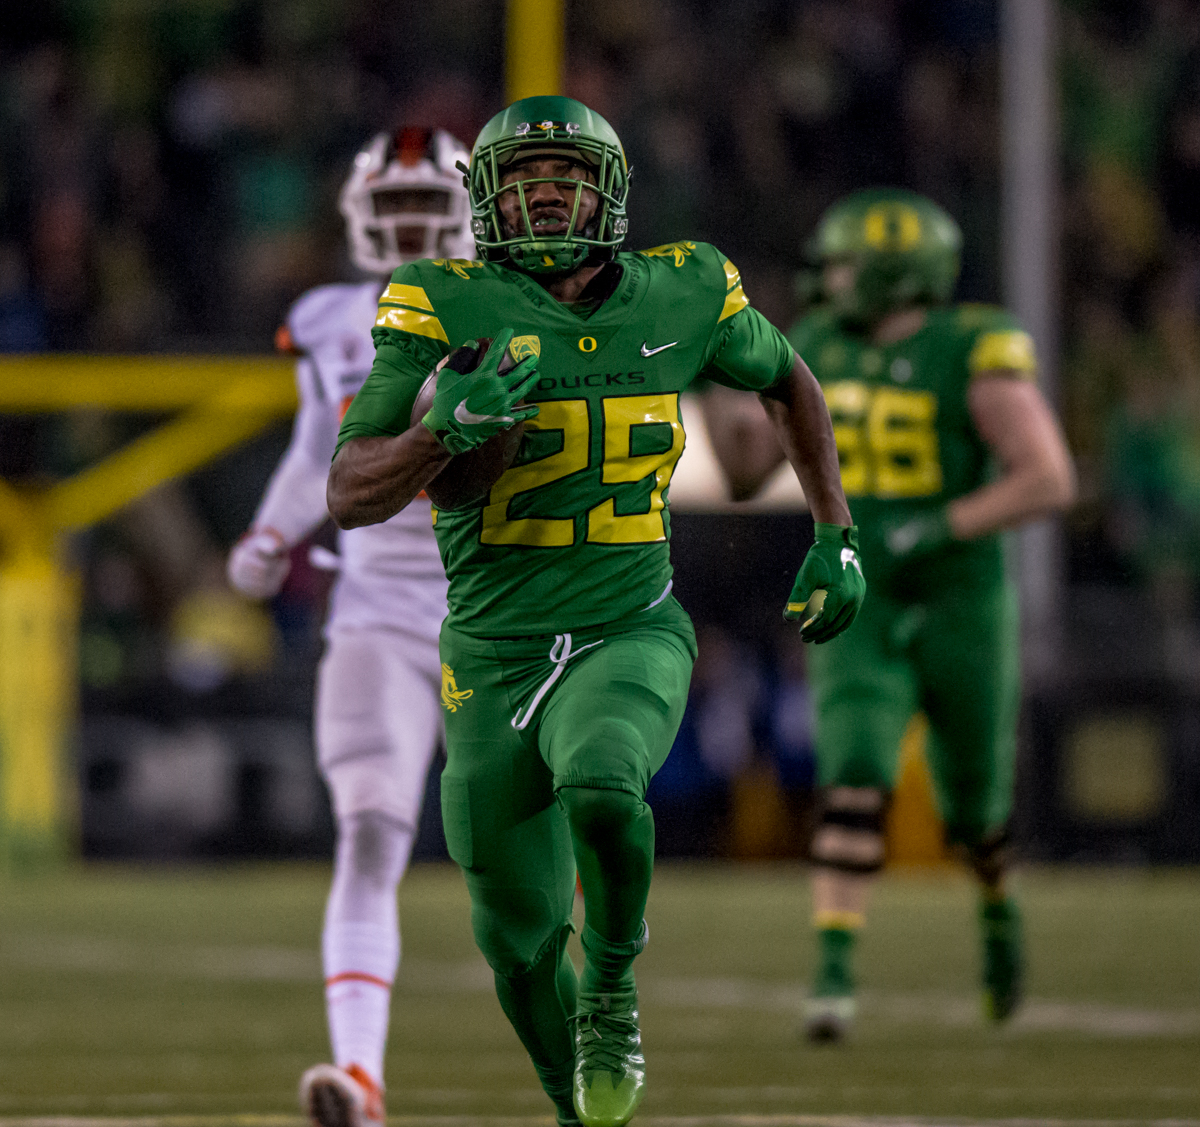 Oregon running back Kani Benoit (#29) runs the ball for a touchdown. The Oregon Ducks defeated the Oregon State Beavers 69 to 10 in the 121st Civil War game at Autzen Stadium in Eugene, Ore. on Saturday November 25, 2017. Photo by Ben Lonergan, Oregon News Lab